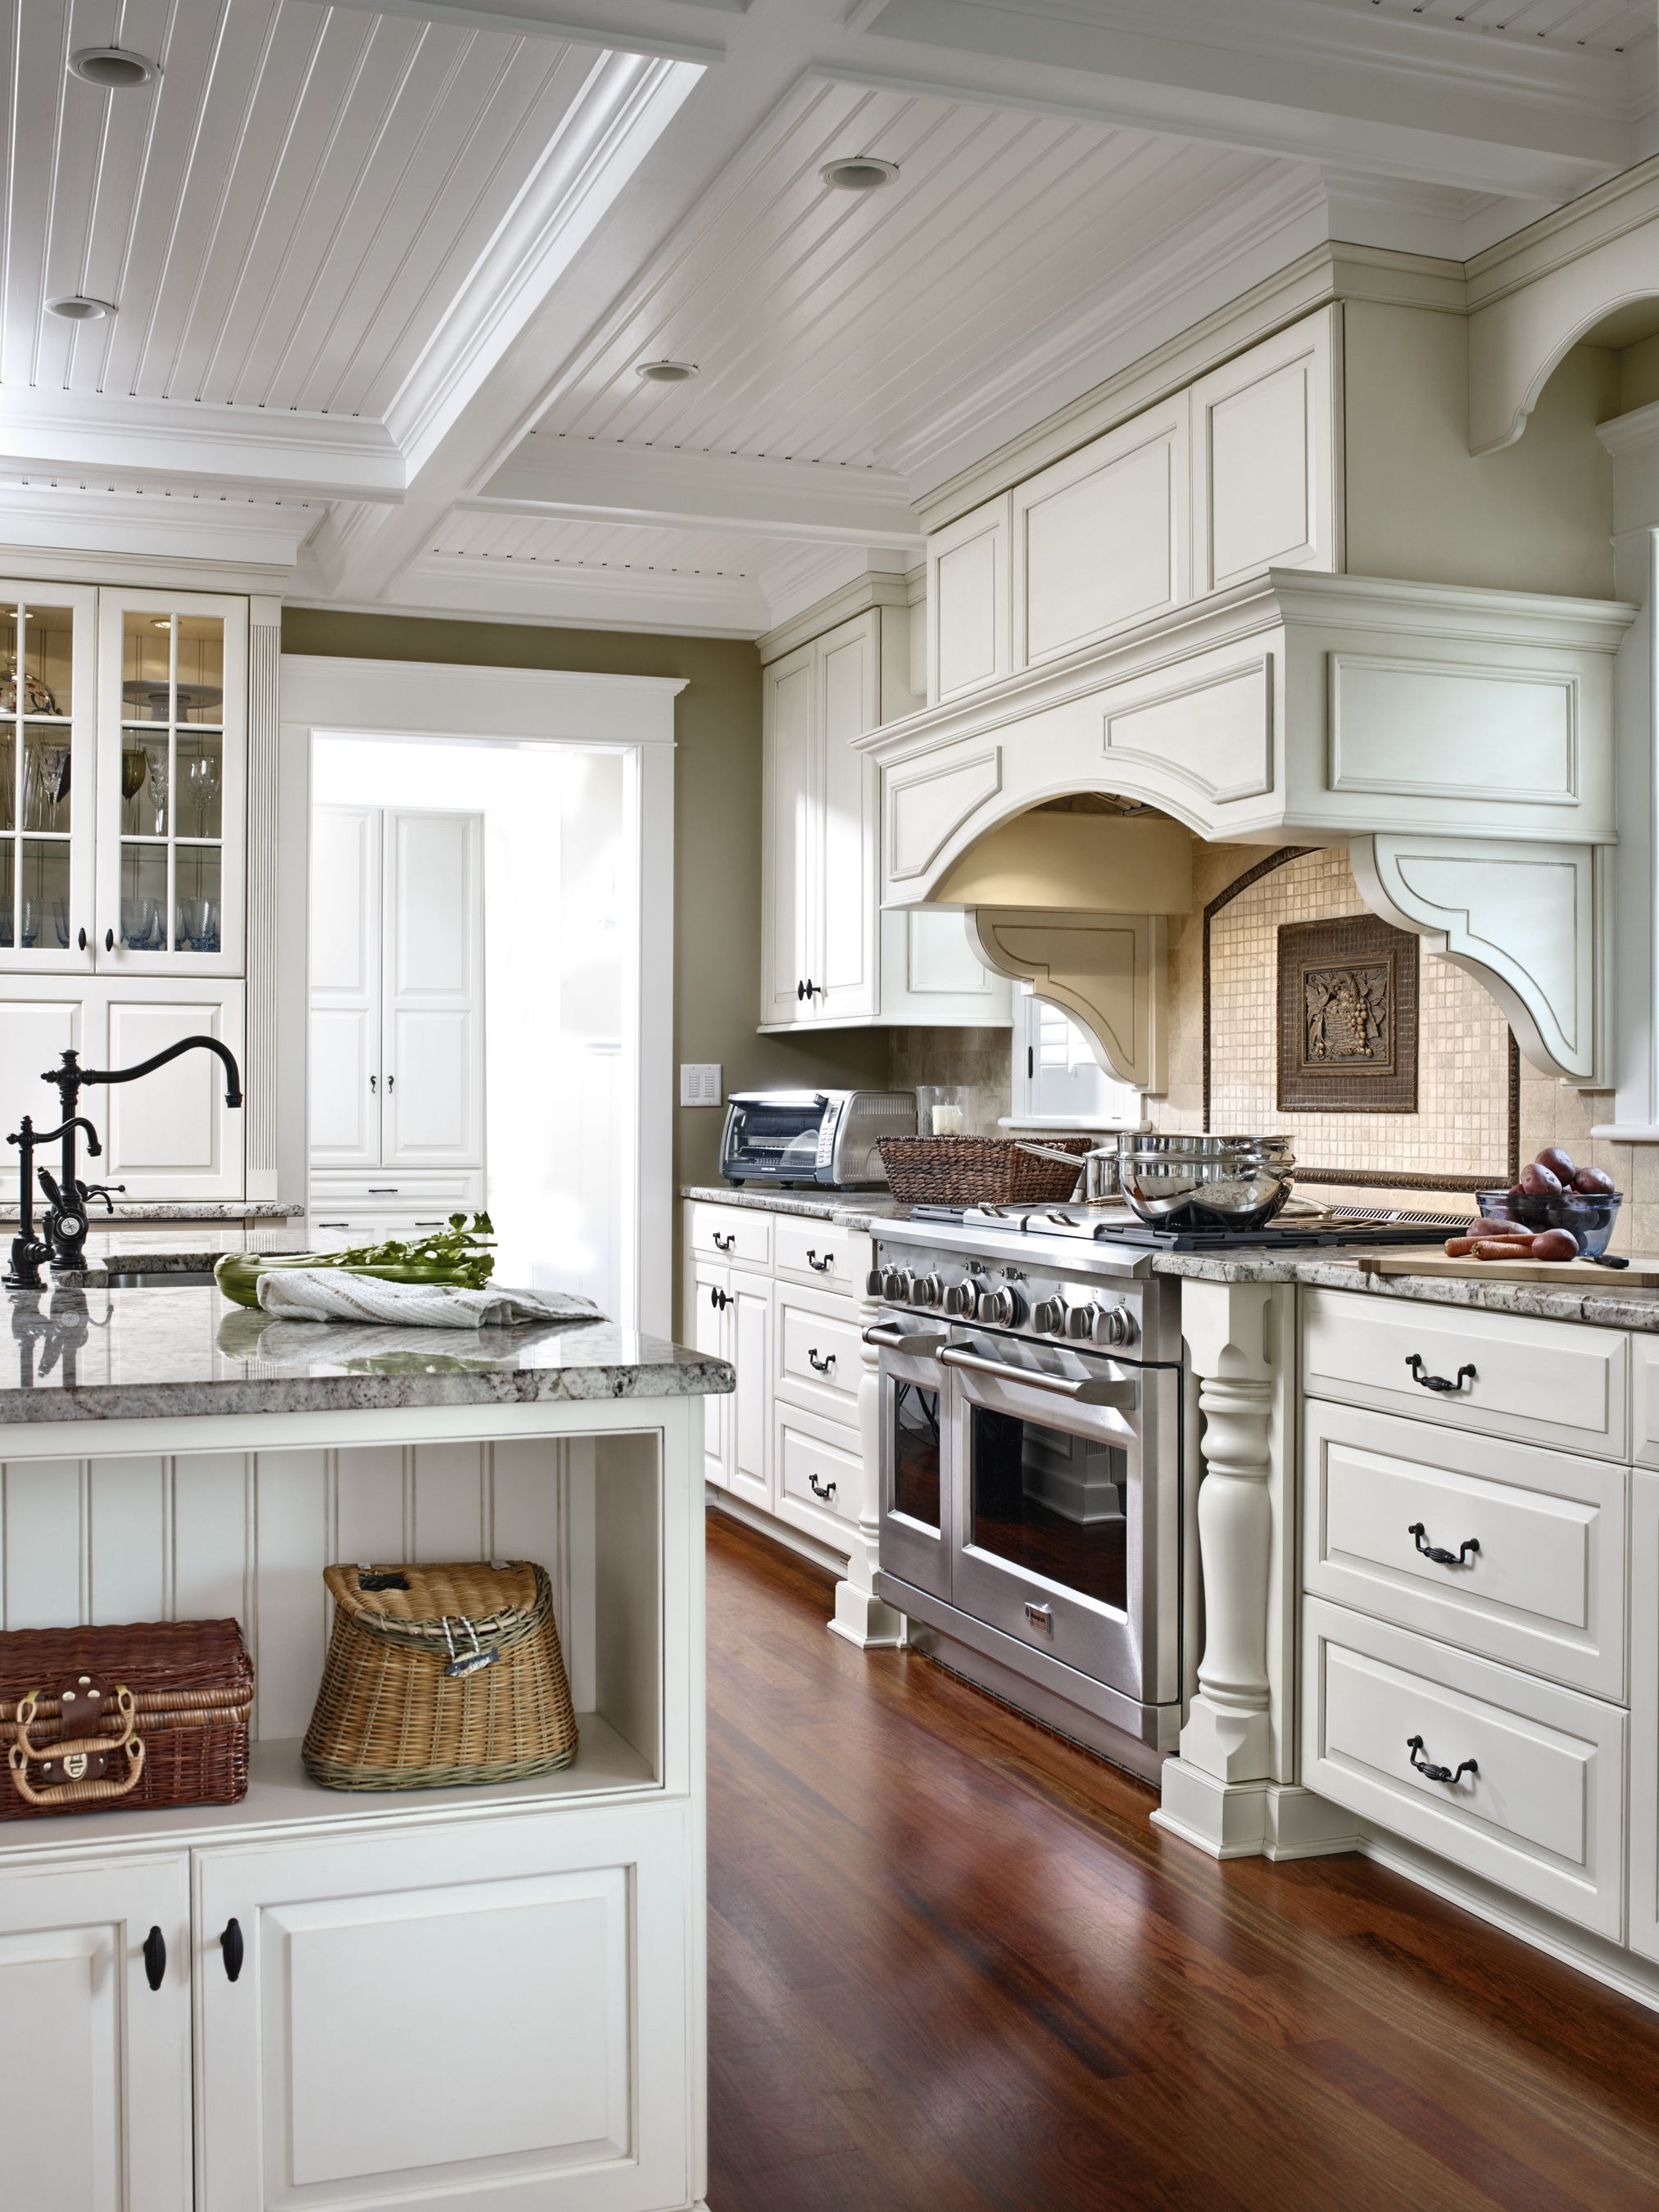 Cape Cod Kitchen Ideas Part - 42: Custom Kitchen Design By Connie LePre Of CVL Designs, LLC · Cape Cod ...